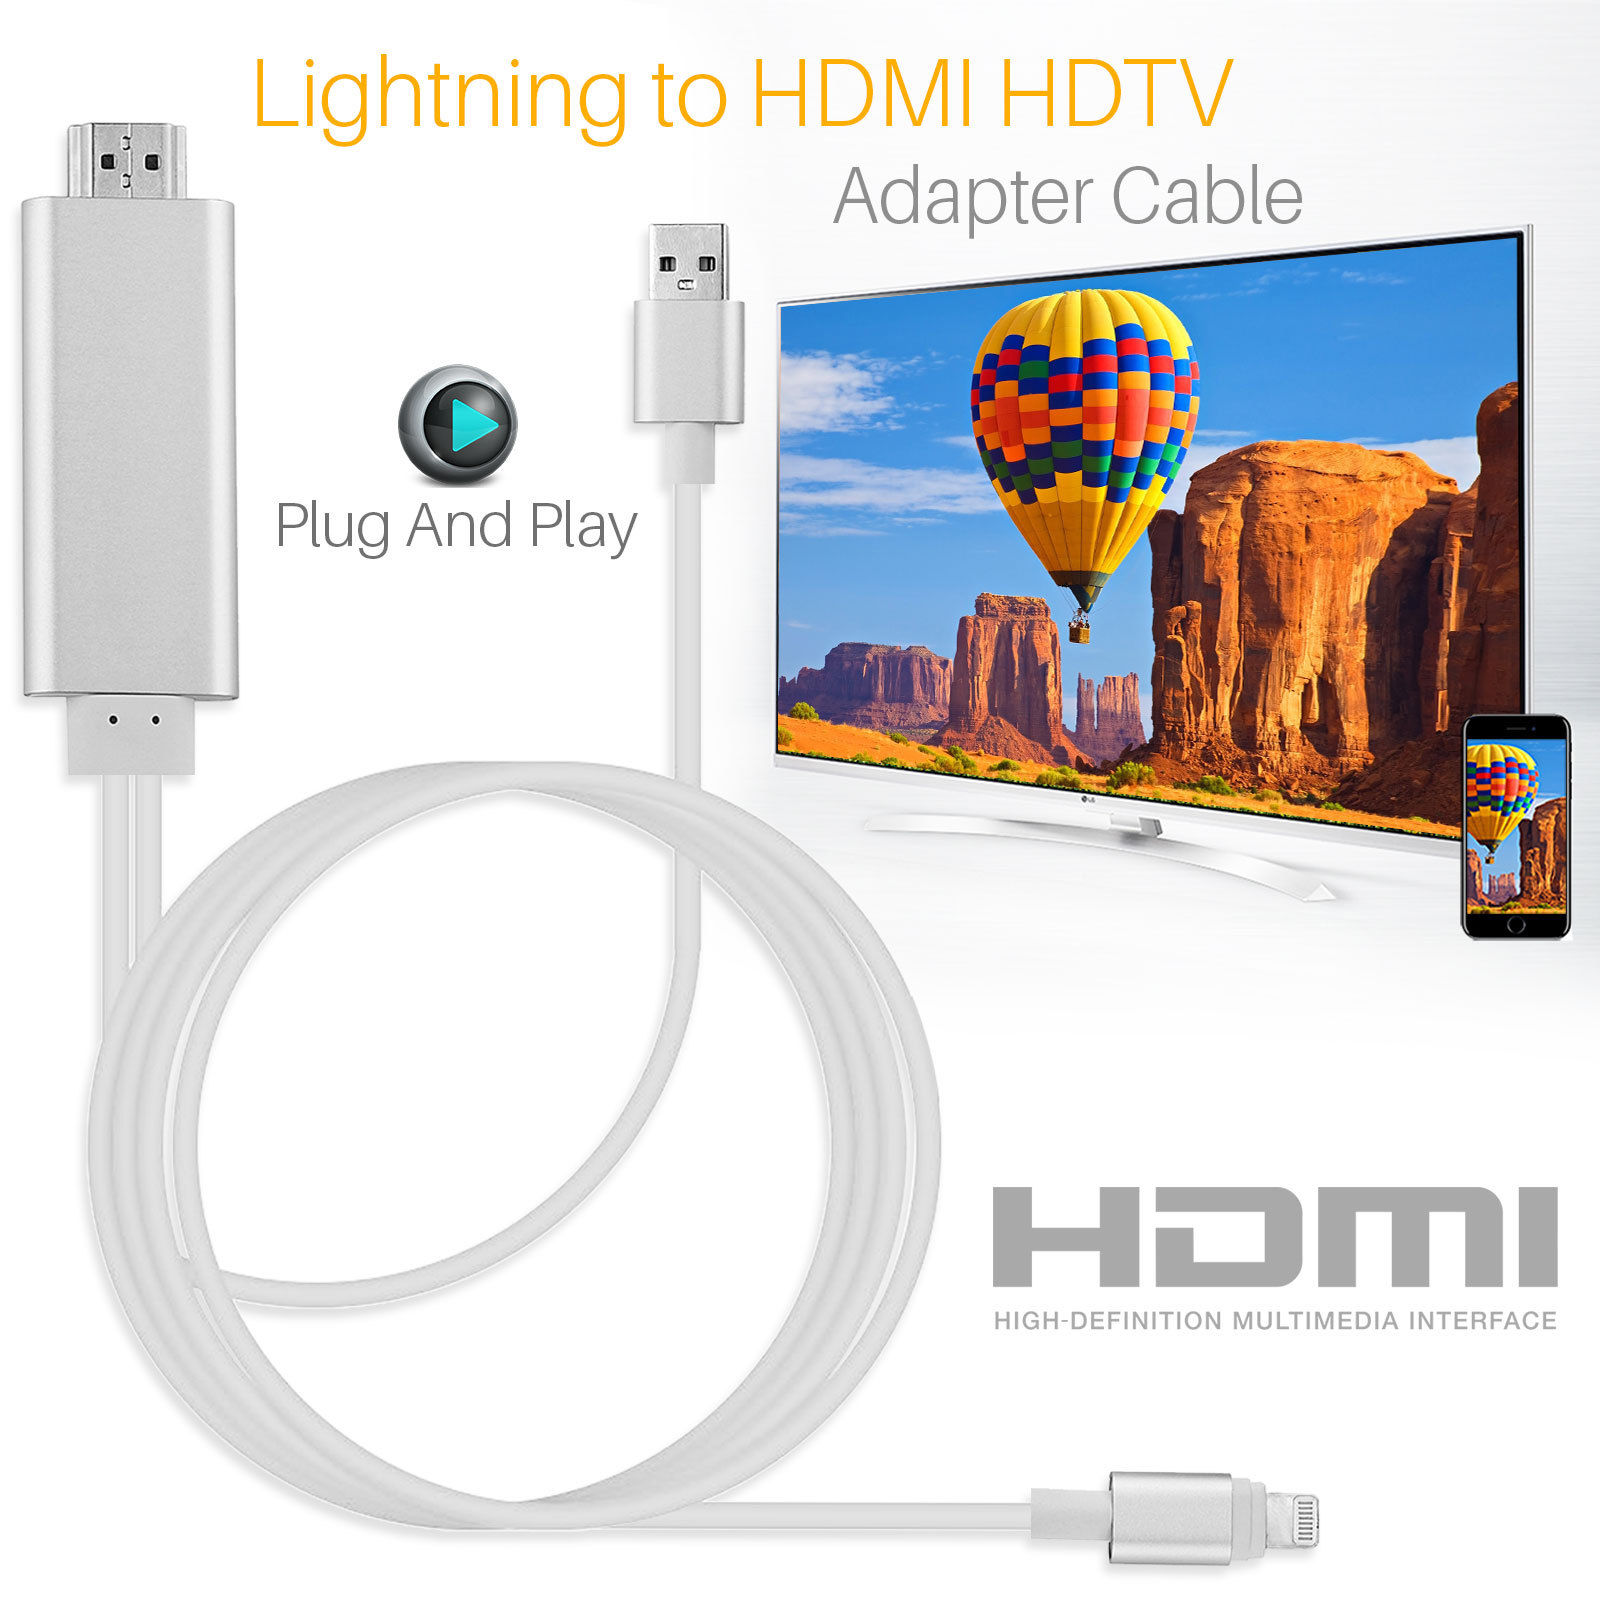 HDMI Cable For Lightning to HDMI Cable HDTV TV AV Adapter USB Cable 1080P For iPad Air /iPad mini 2 3 4 iPhone X 8 7 6S Plus iOS for ipad to hdmi adapter for lightning to digital av hdmi 4k usb cable connector up to 1080p hd for iphone x 8 76s ipad air ipod